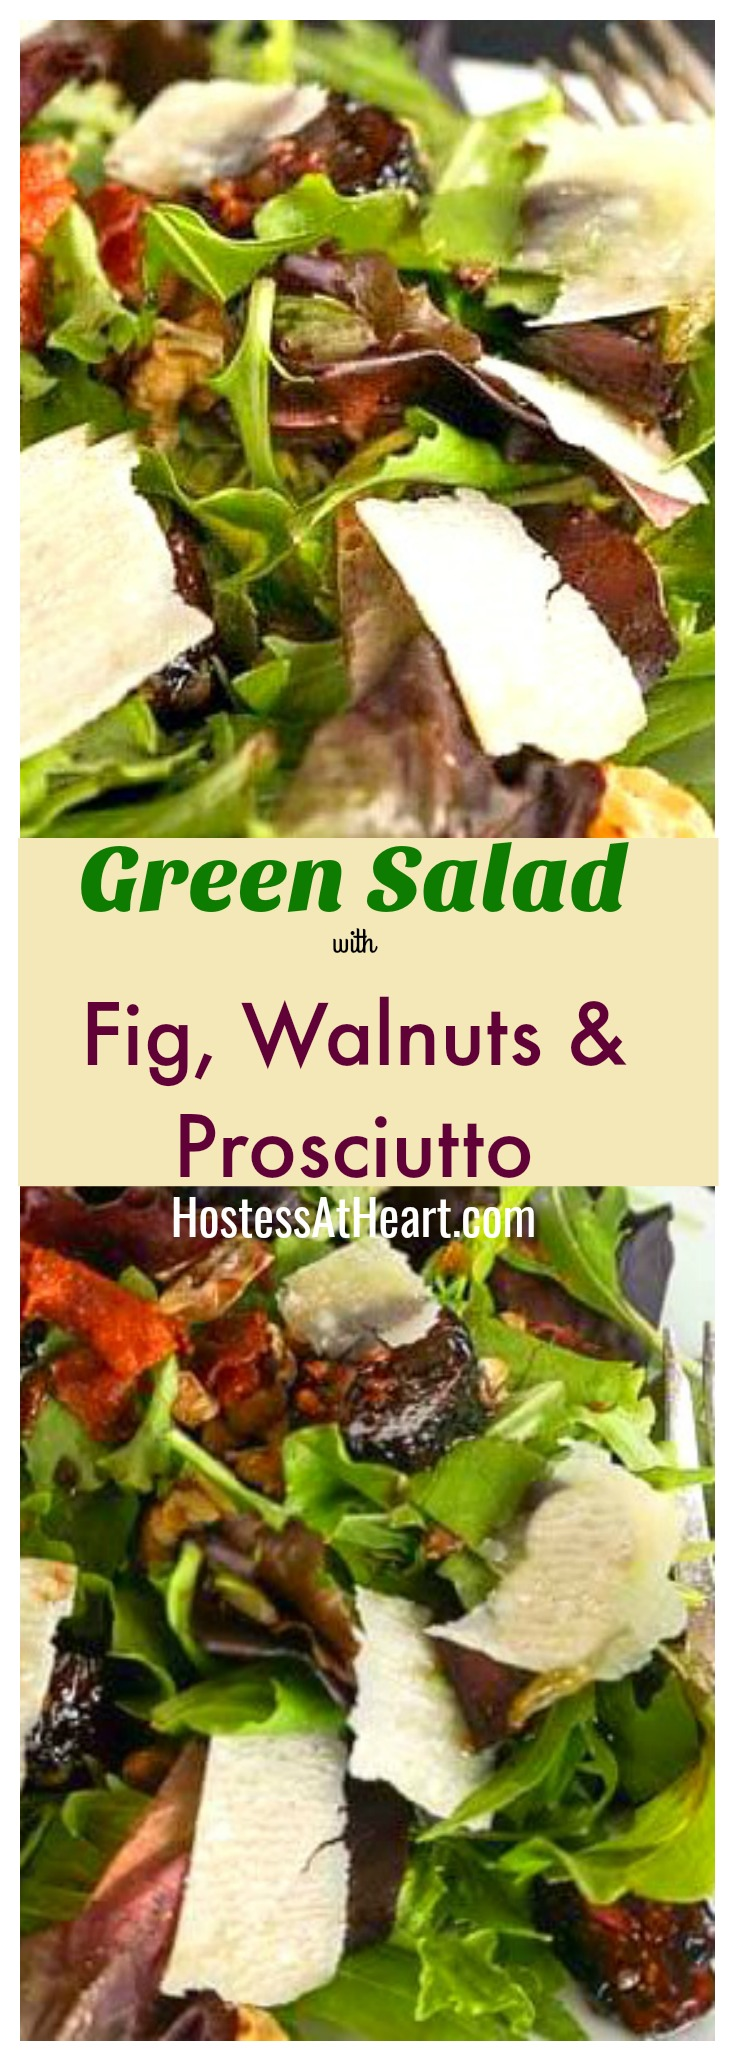 Mixed Green Salad with Fig, Prosciutto, Walnut and, Parmesan is neither boring or high in calories. It looks complicated but it's not | HostessAtHeart.com